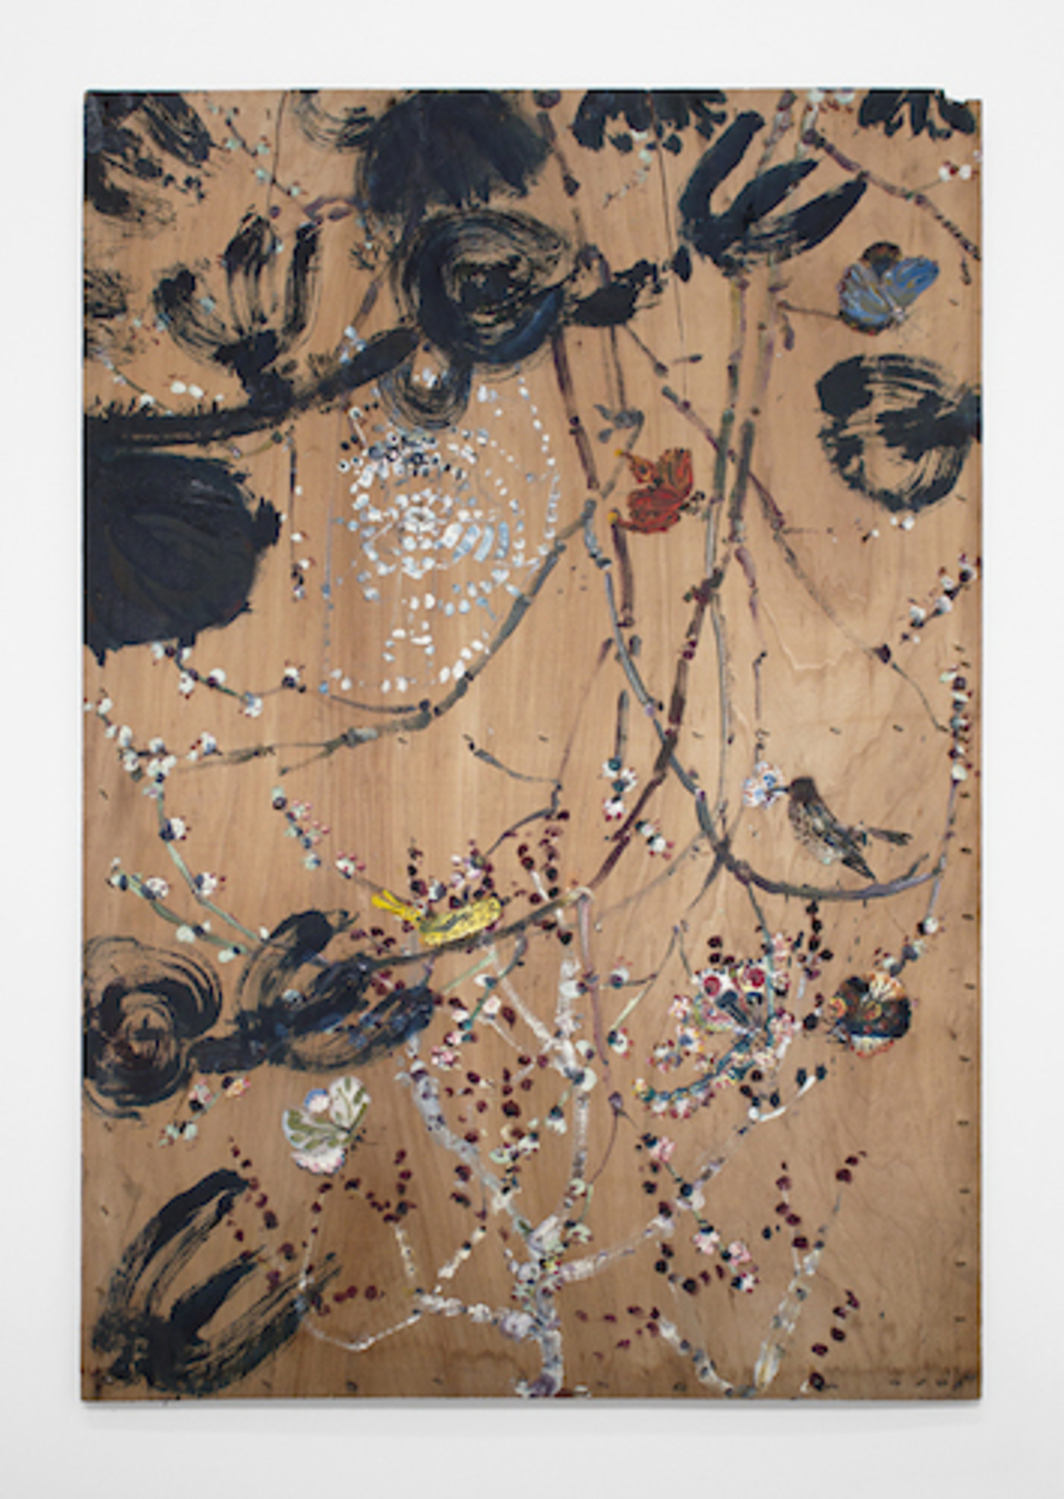 "Bill Lynch, Untitled (Spider Web and Butterflies), n.d., oil on wood, 49 x 32 1/2 x 1""."